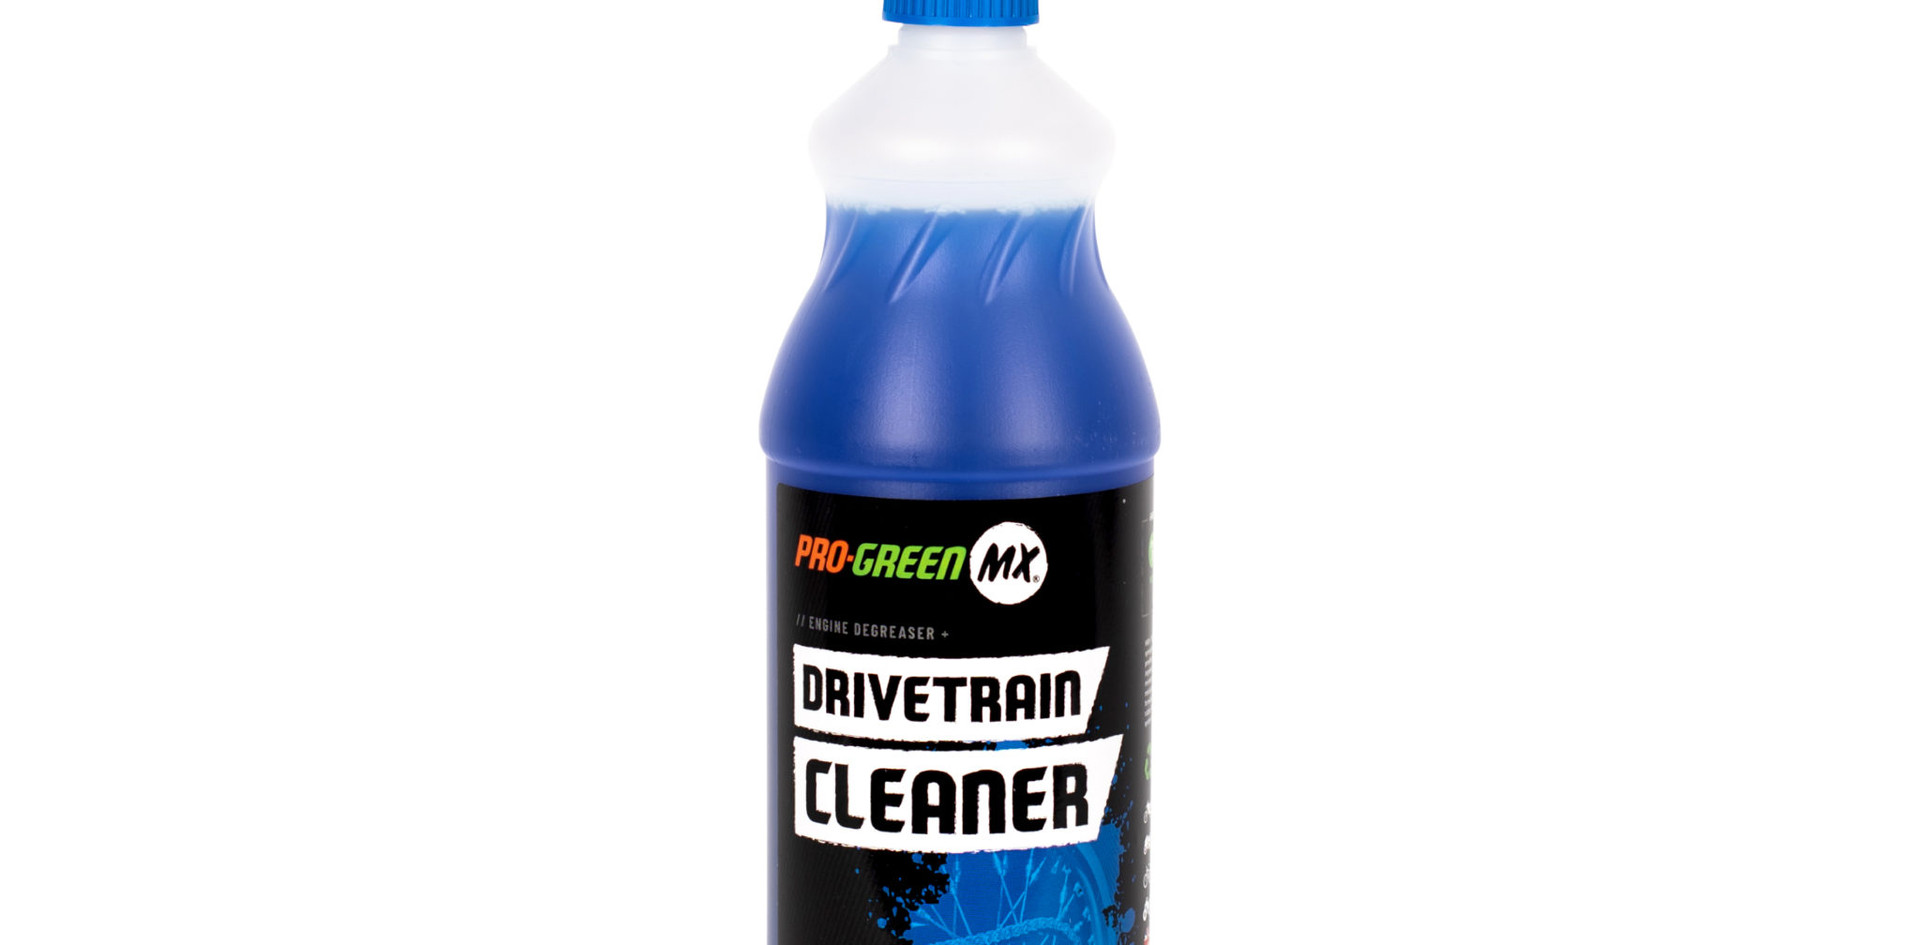 Pro Green MX Drive Chain Cleaner